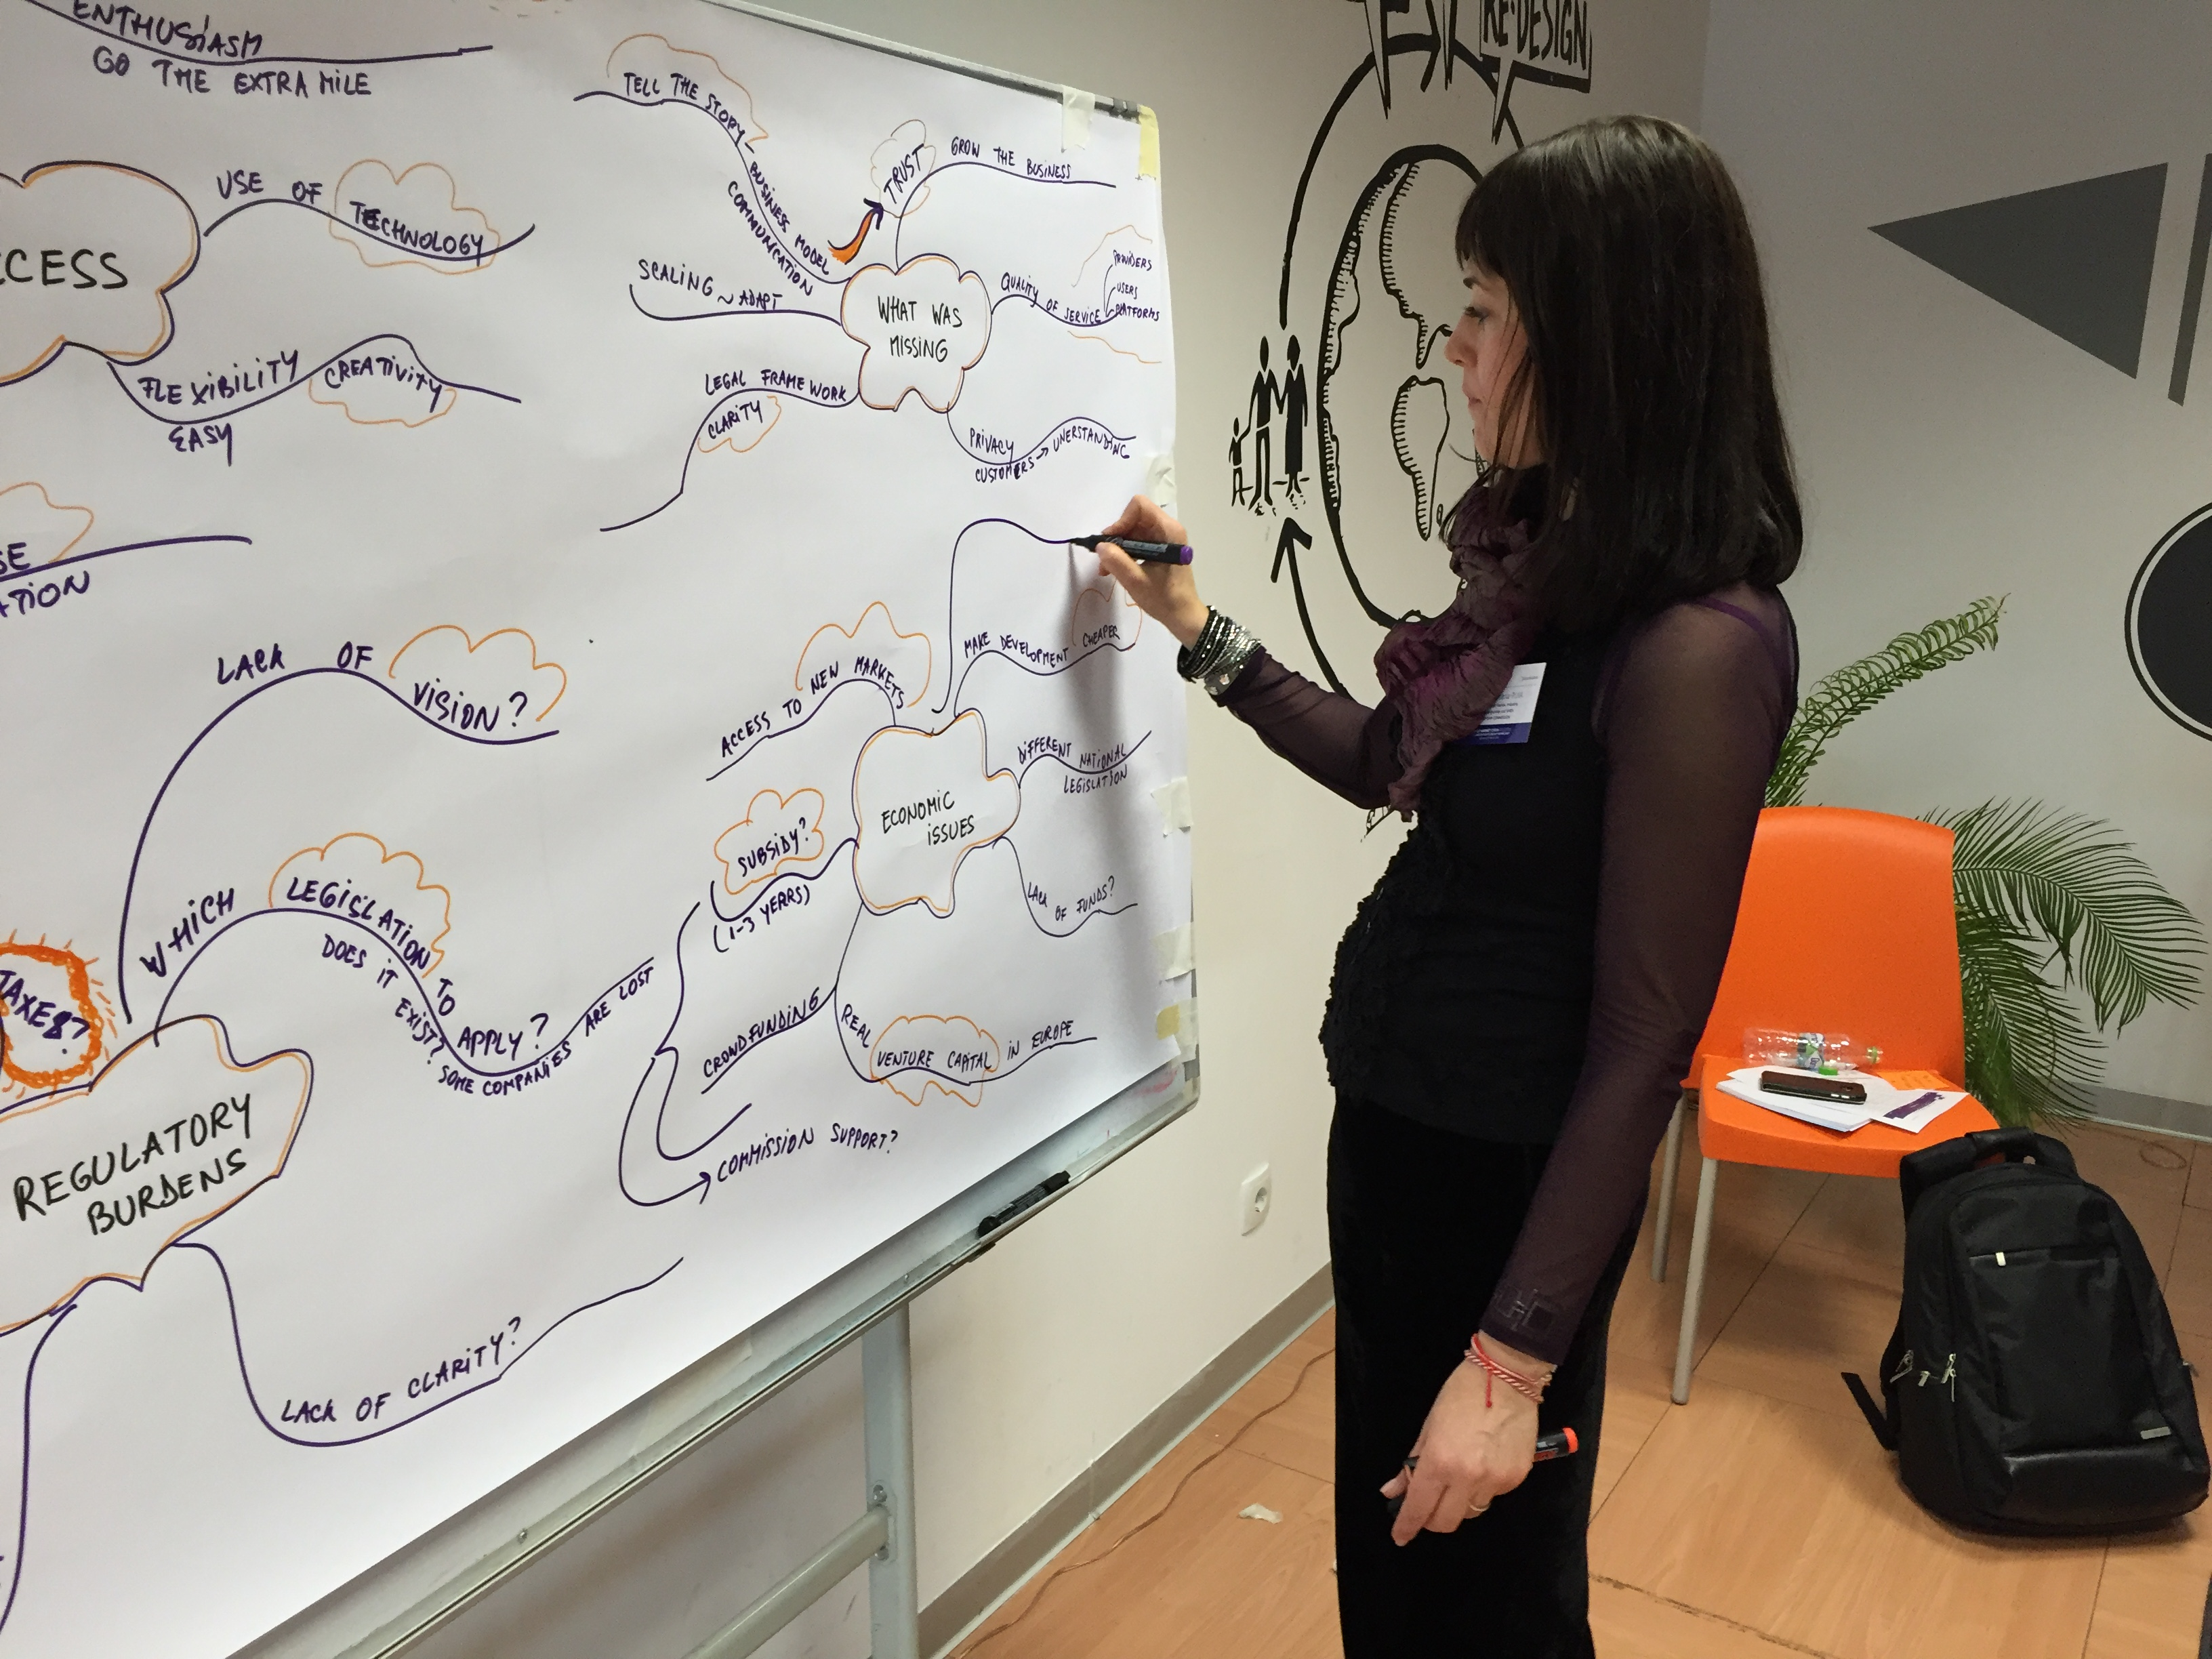 Dana Puia Morel facilitating the Bucharest workshop in participatory leadership style